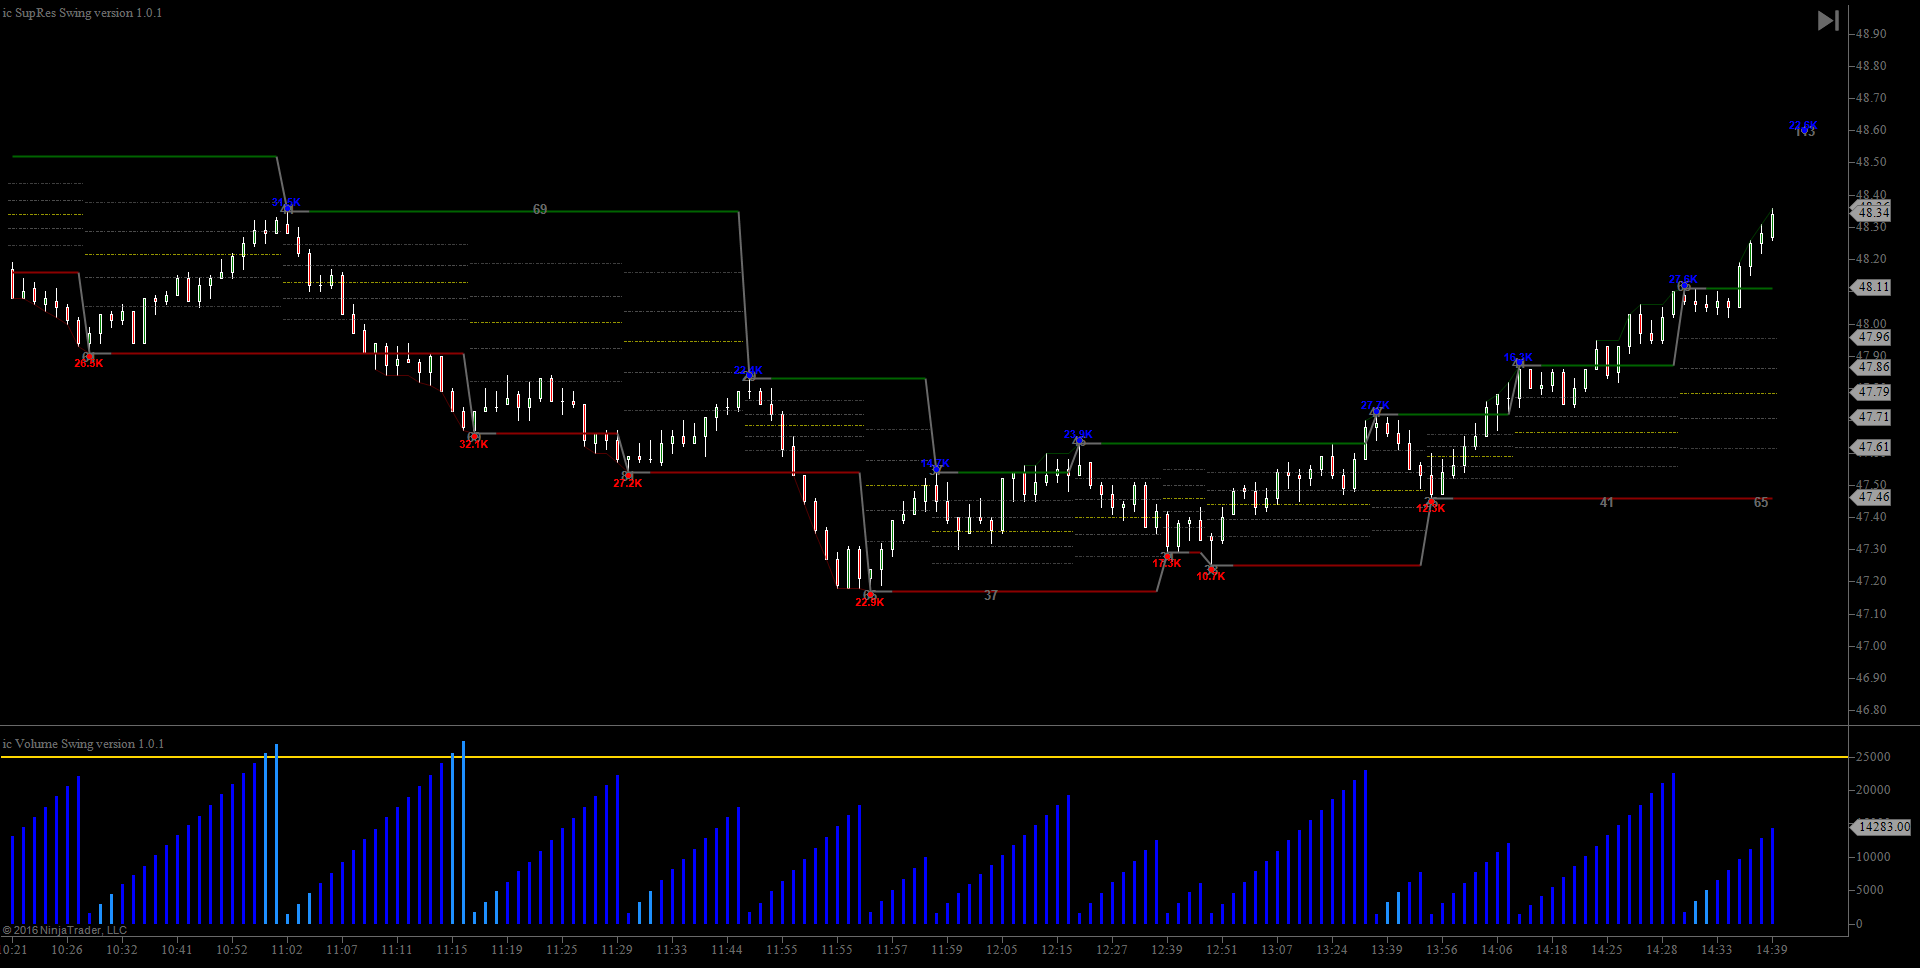 Volume Swing Indicator